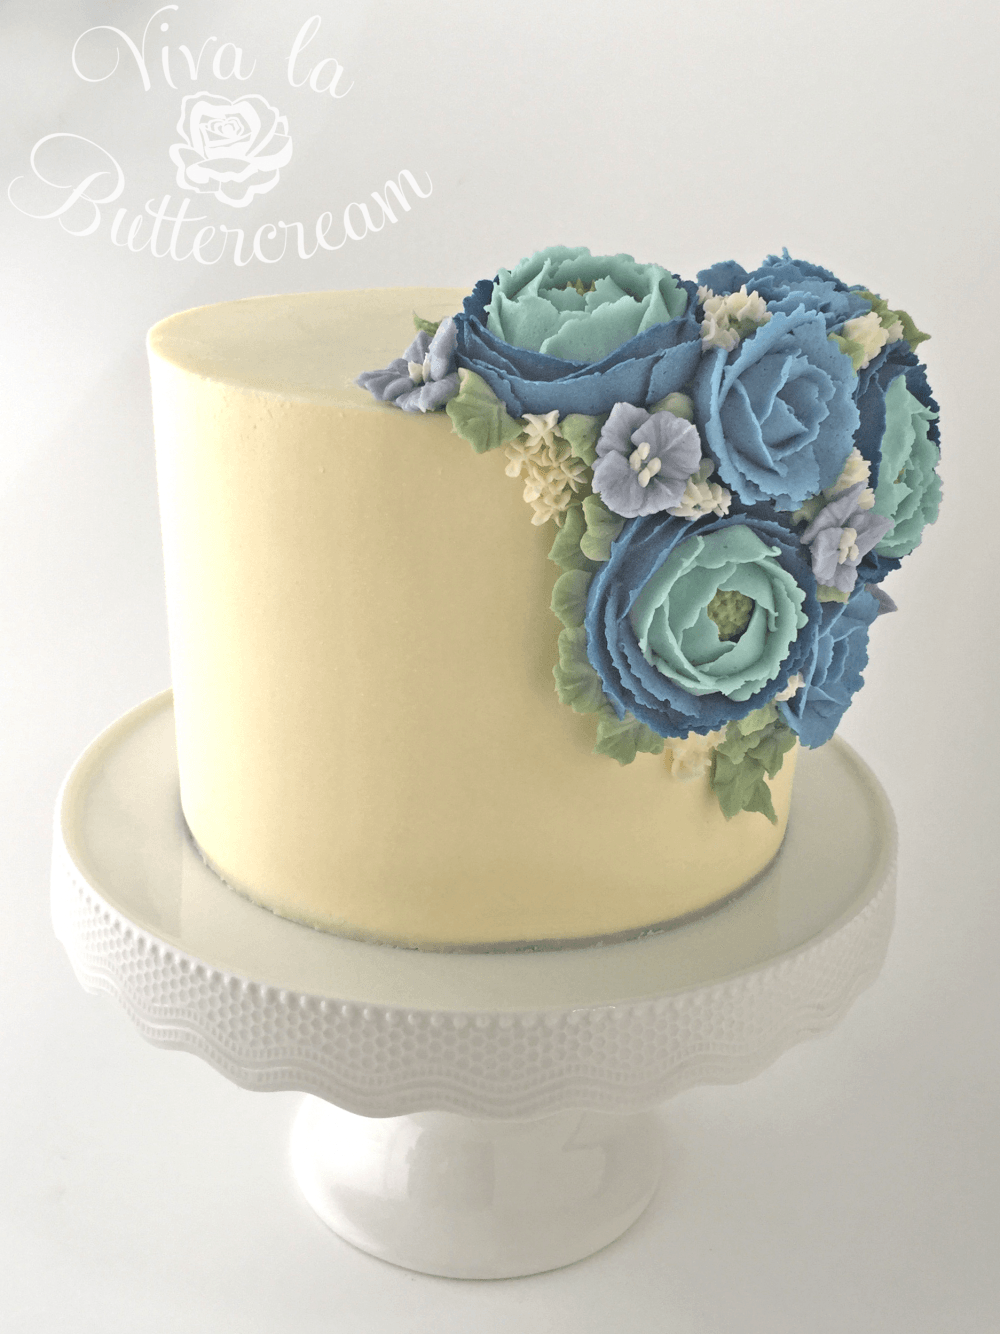 Defying Gravity Attaching Flowers To The Side Of A Cake Butter Cream Cupcakes Decoration Buttercream Roses